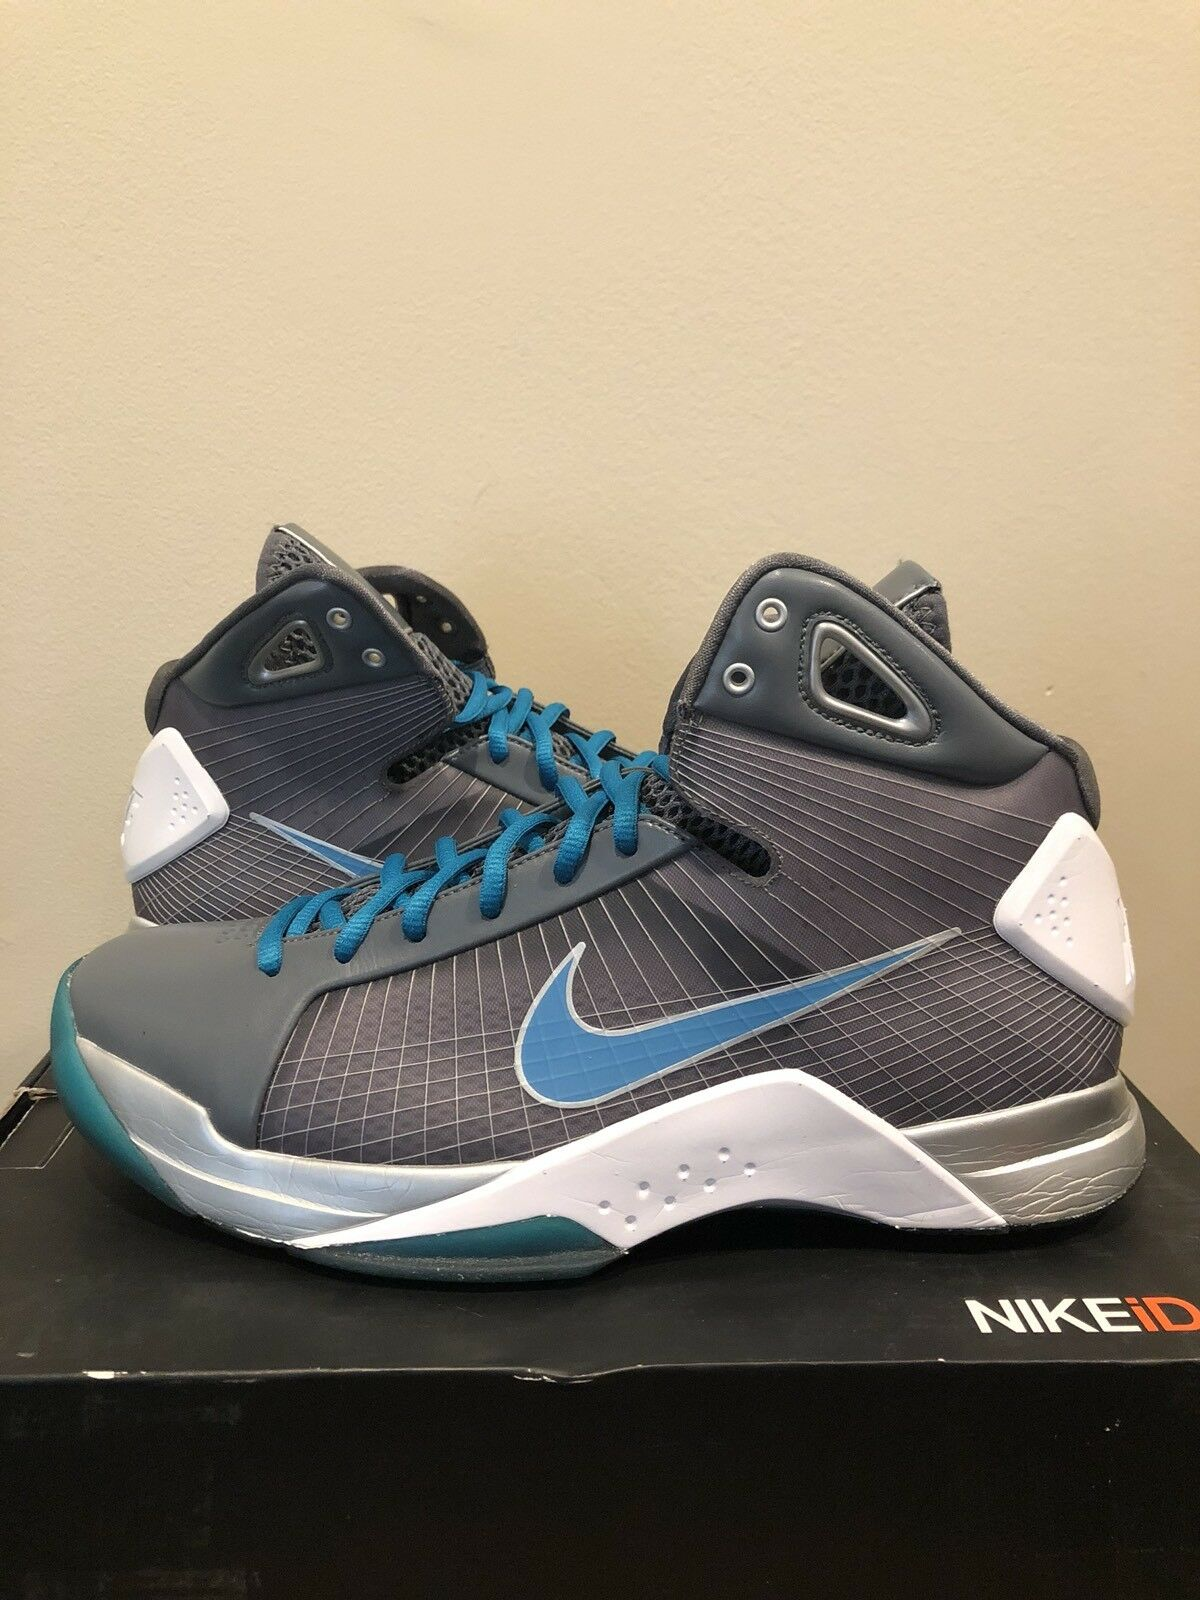 Wild casual shoes Hyperdunk Nike ID basketball Shoes Comfortable